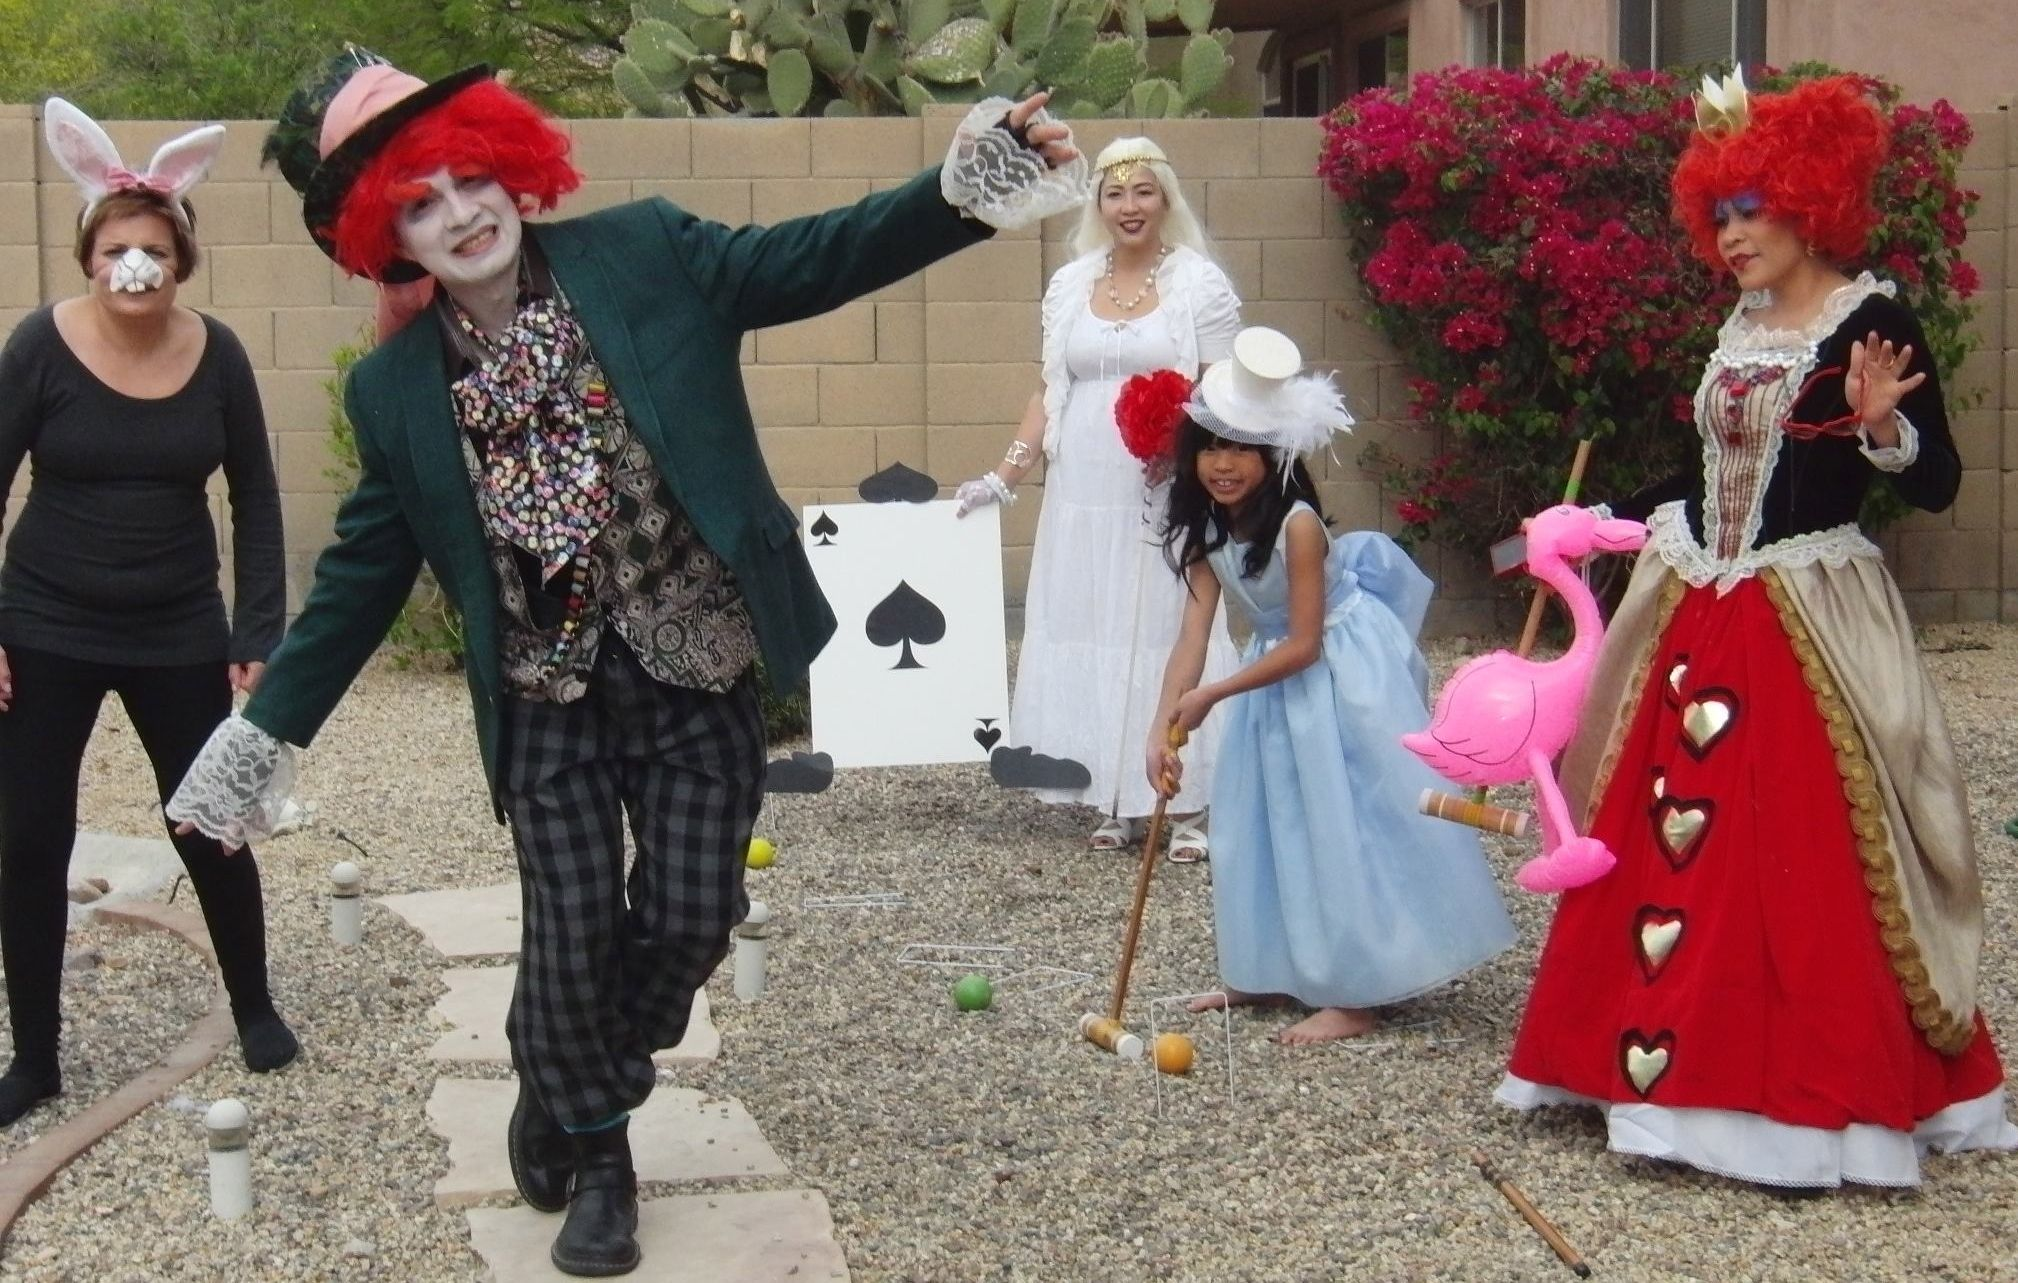 The Rabbit, The Mad Hatter, The White Queen, Alice, and The Red Queen - for my daughter's 8th Birthday Party